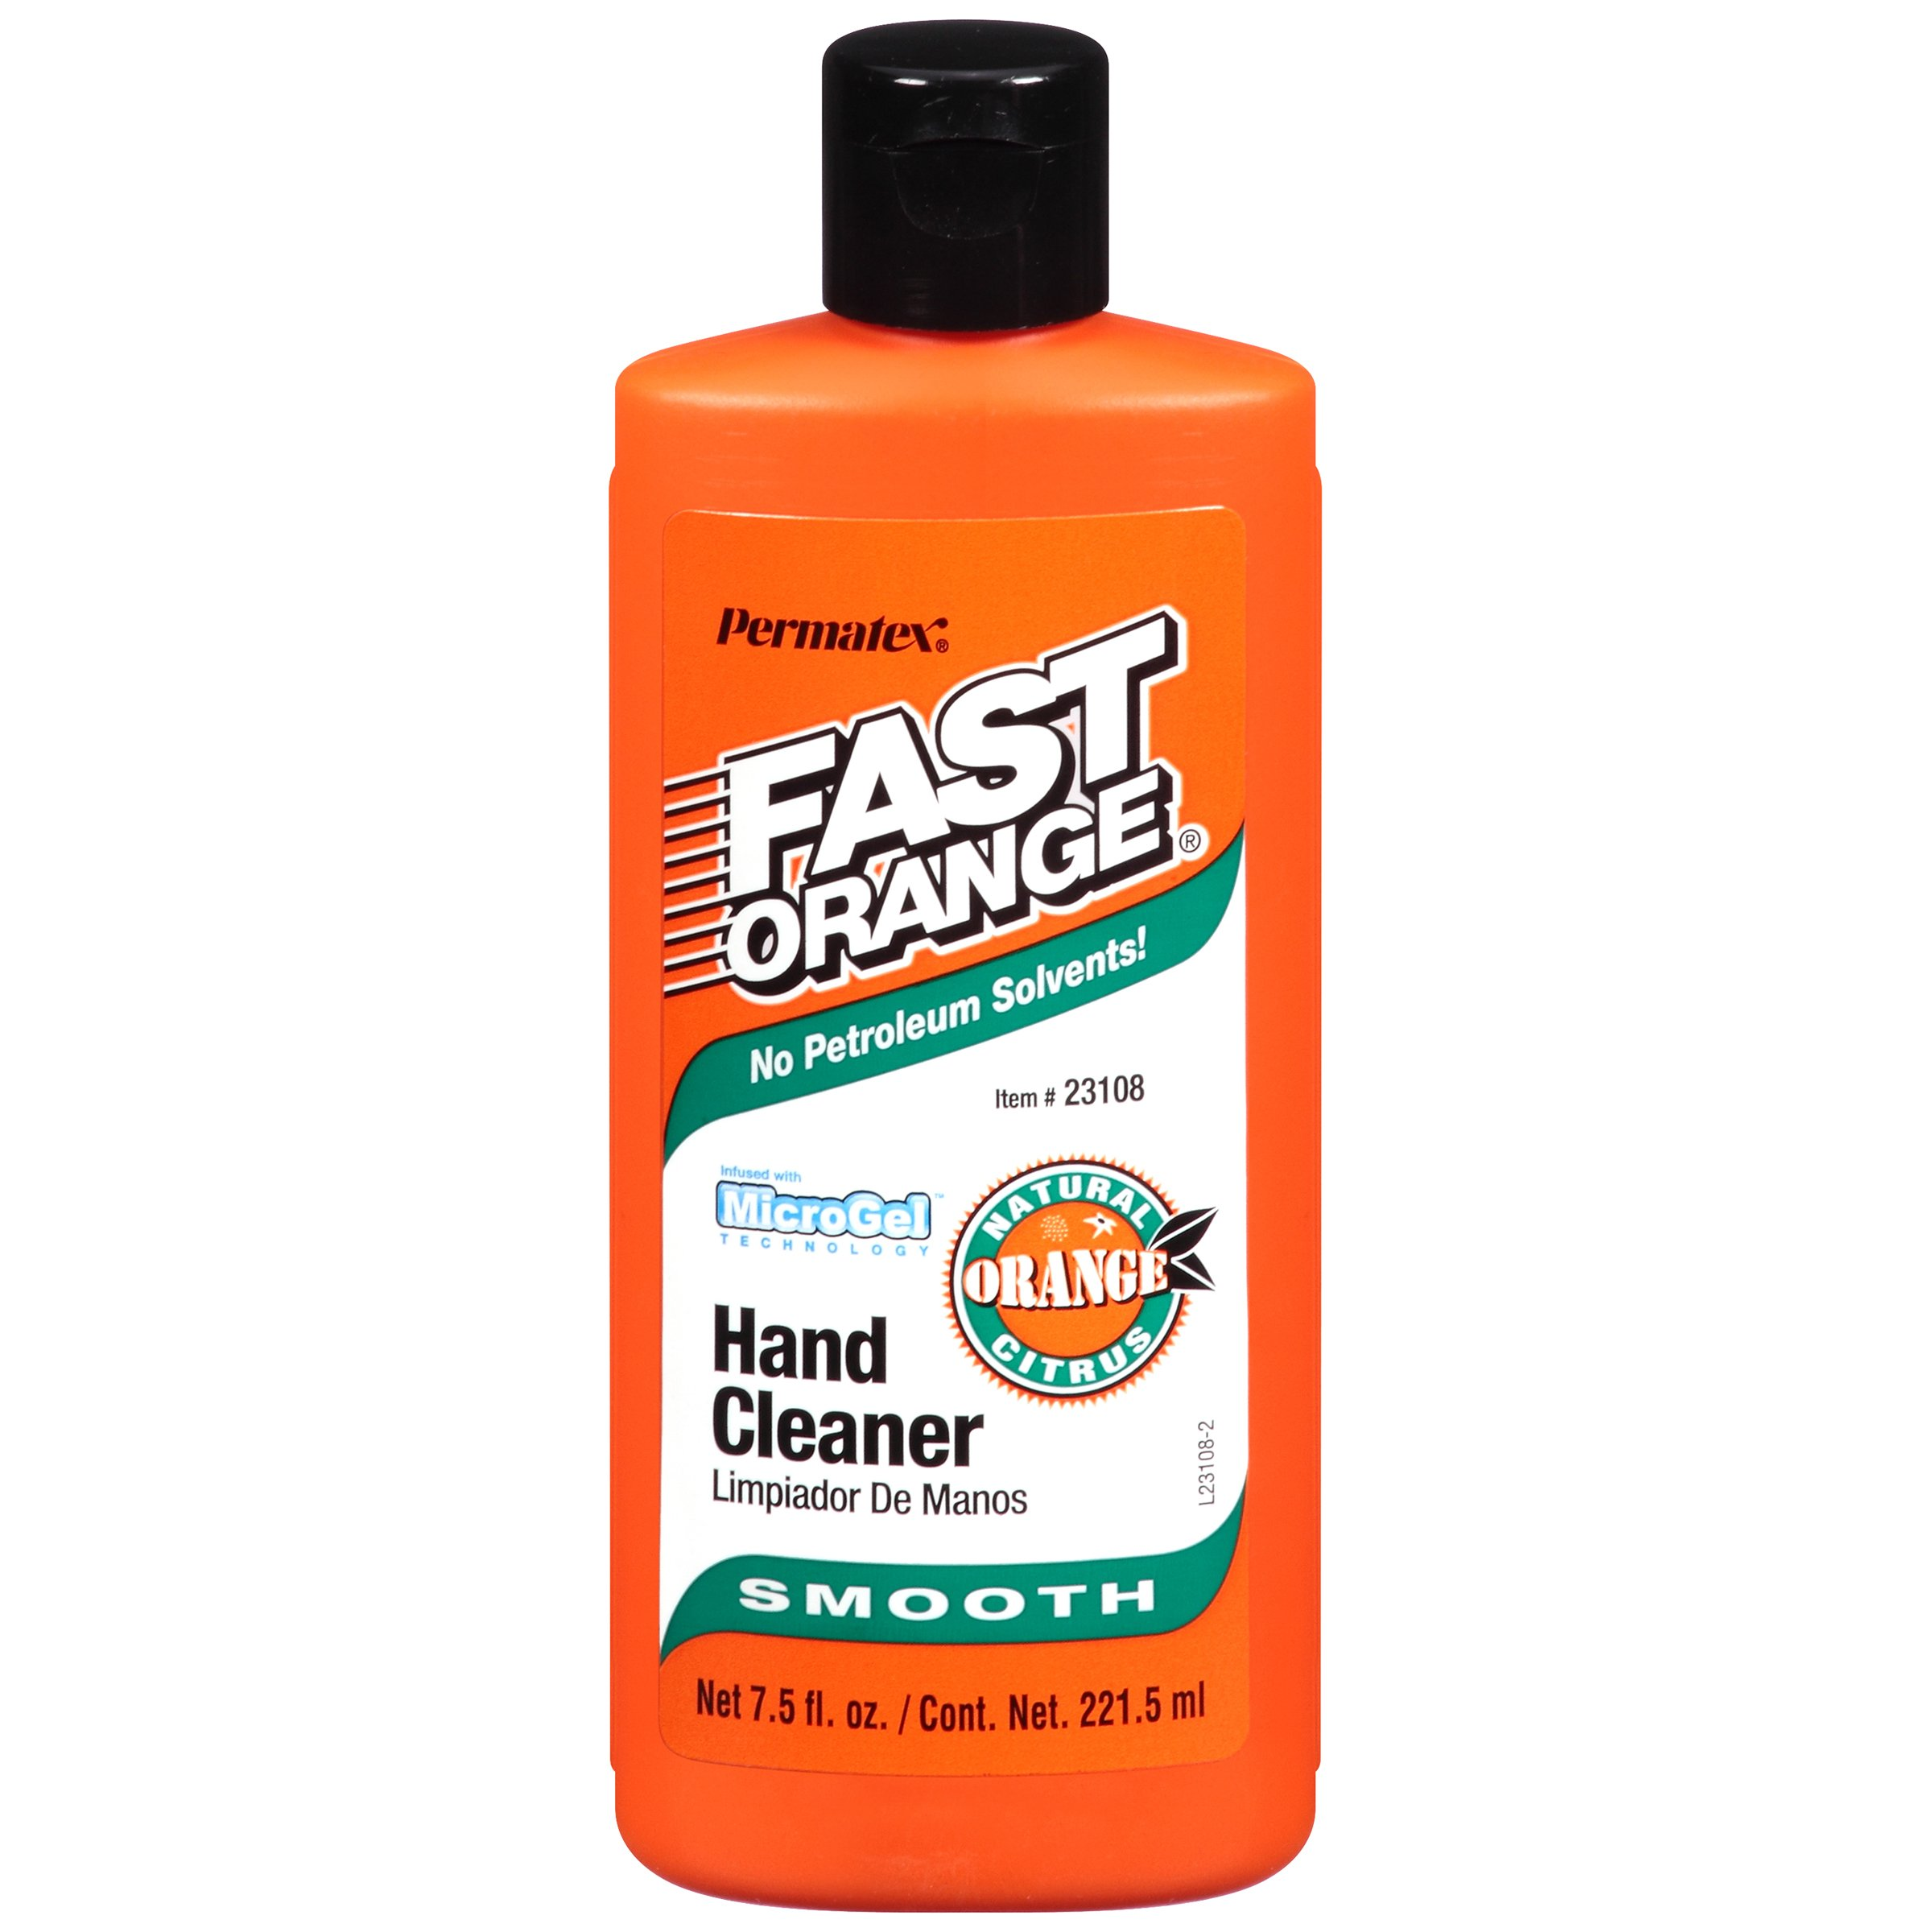 Permatex 23108-12PK Fast Orange Smooth Lotion Hand Cleaner, 7.5 oz. (Pack of 12)